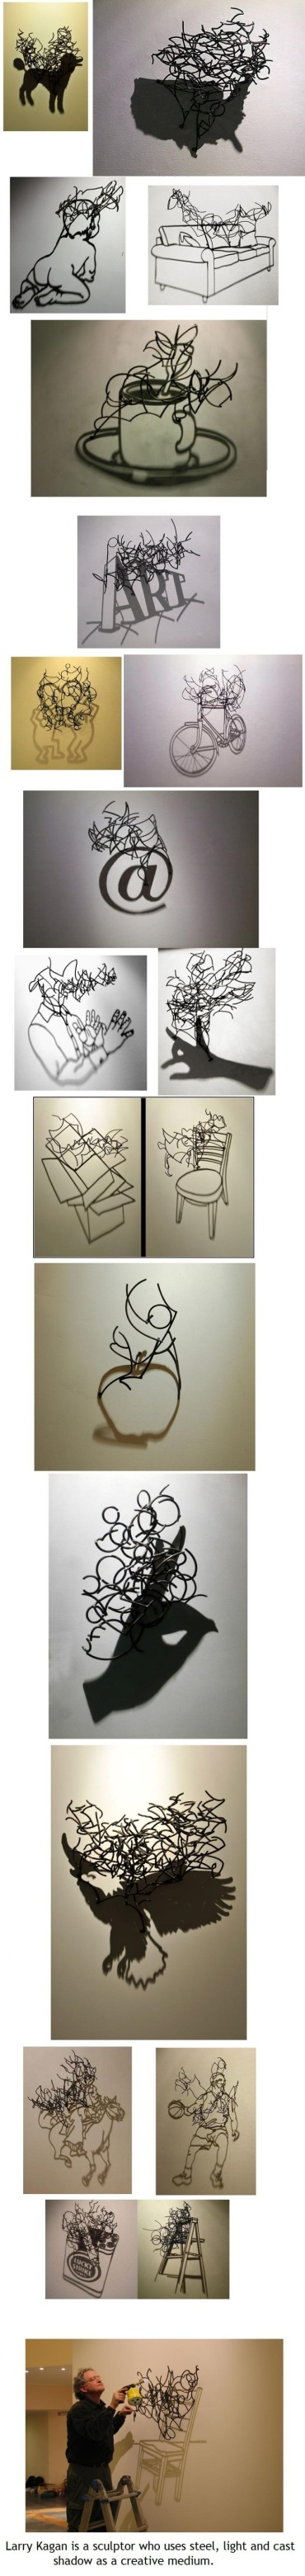 Shadow sculpting